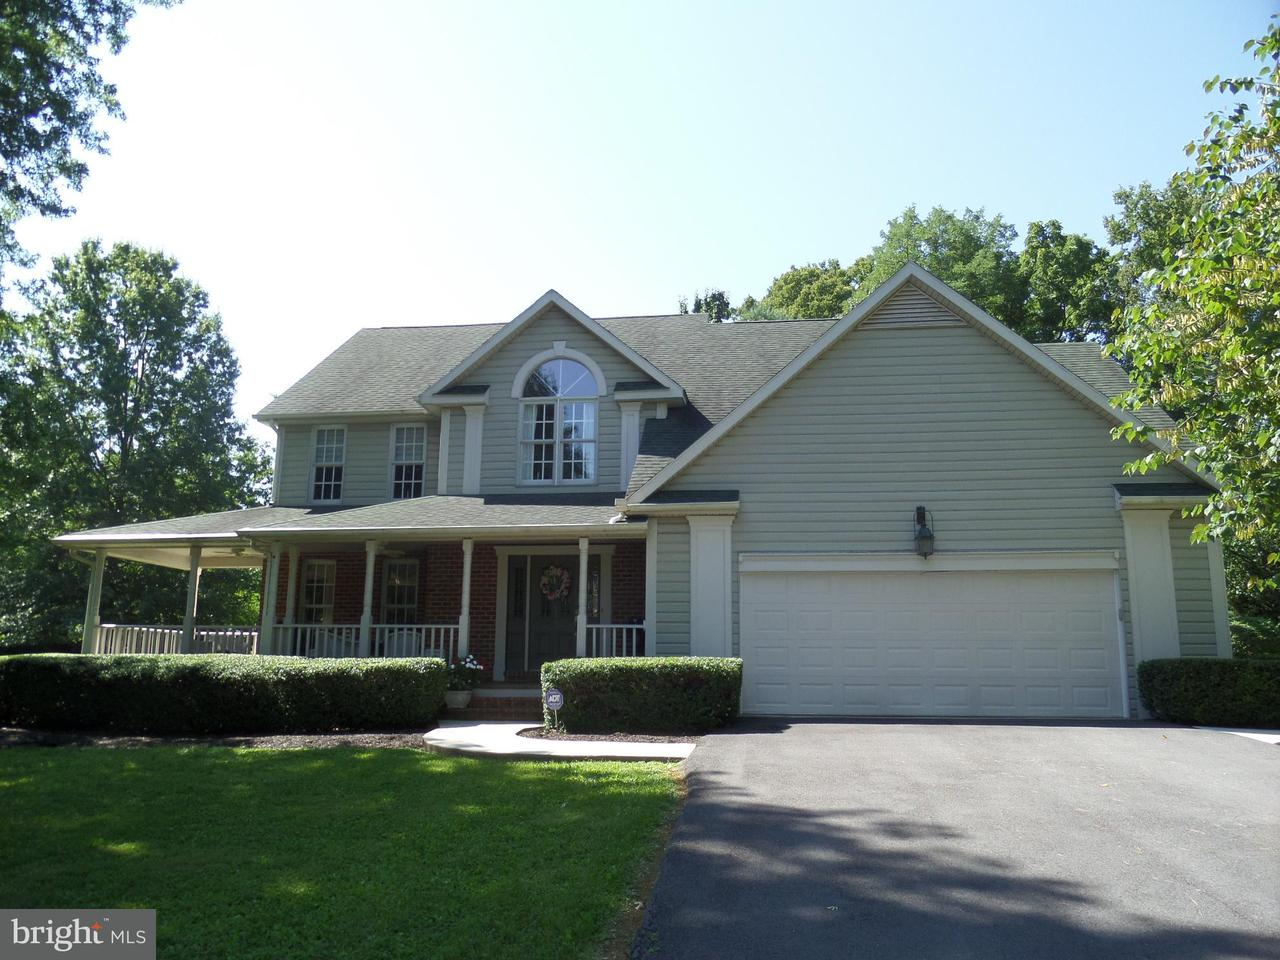 Single Family Home for Sale at 106 Tamsens Court 106 Tamsens Court Martinsburg, West Virginia 25403 United States